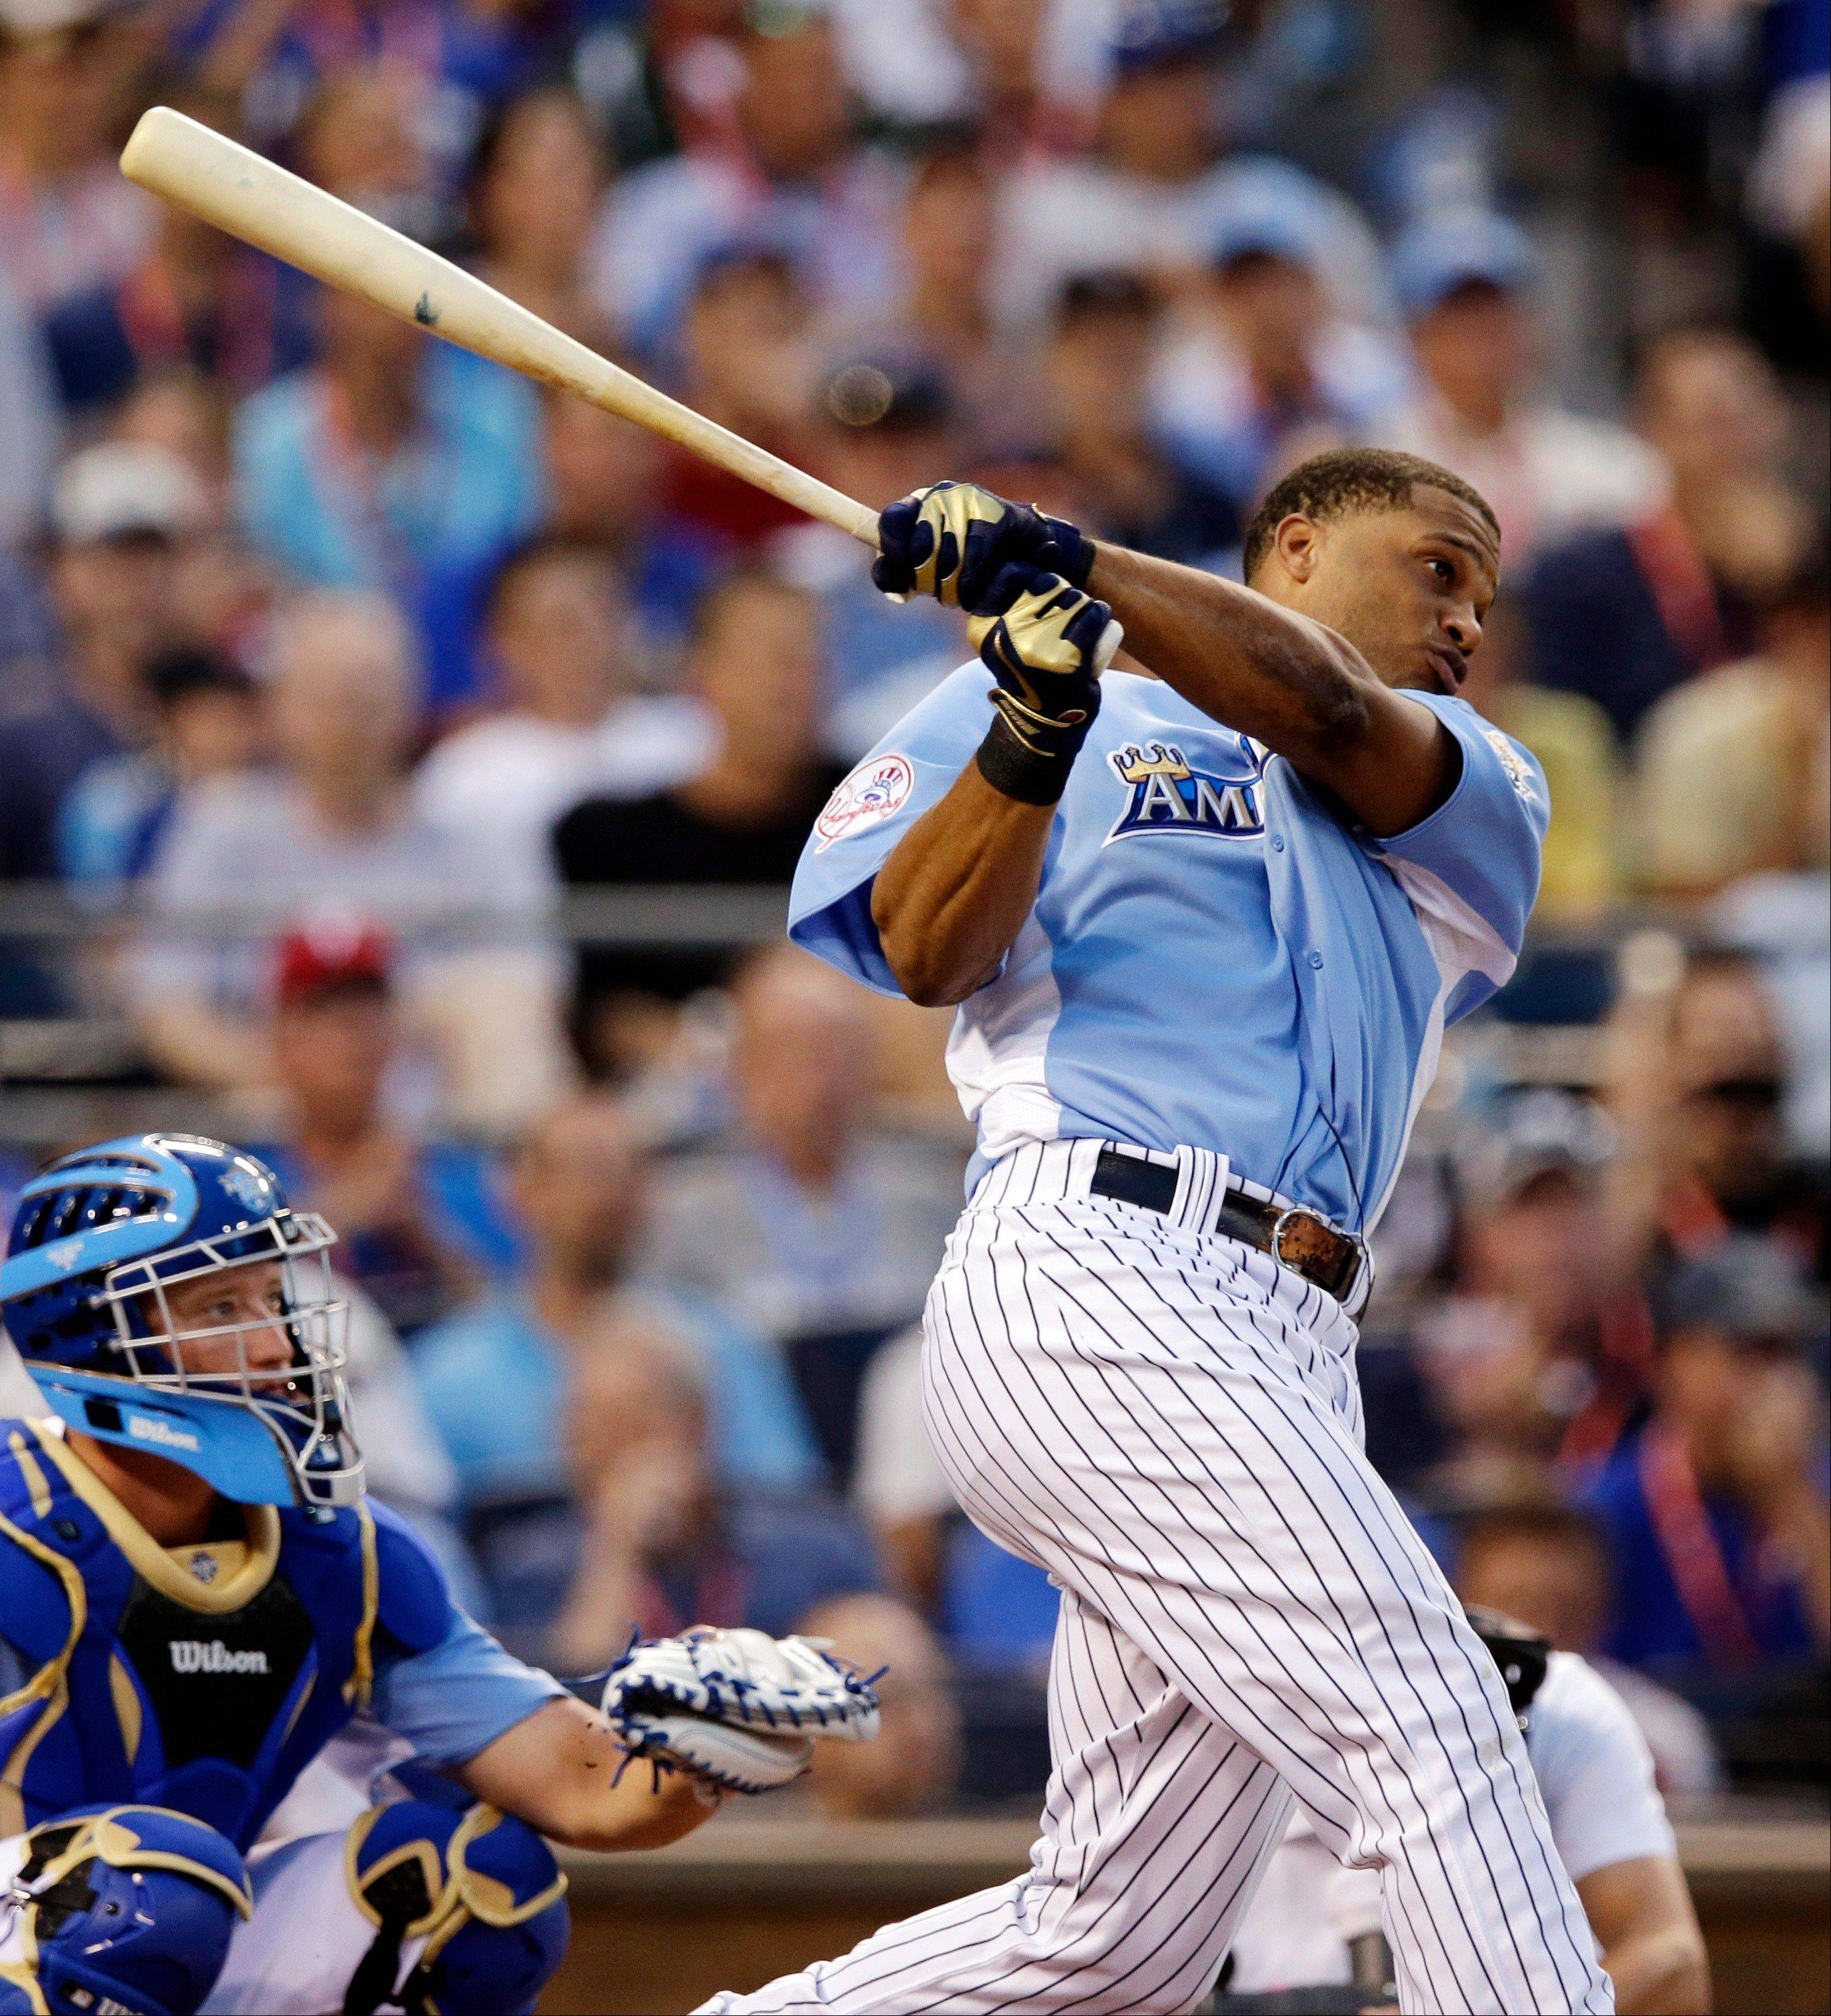 The relentless booing of the Yankees' Robinson Cano by Kansas City fans during the All-Star Home Run Derby on Monday night drew national attention, and in some places scorn.